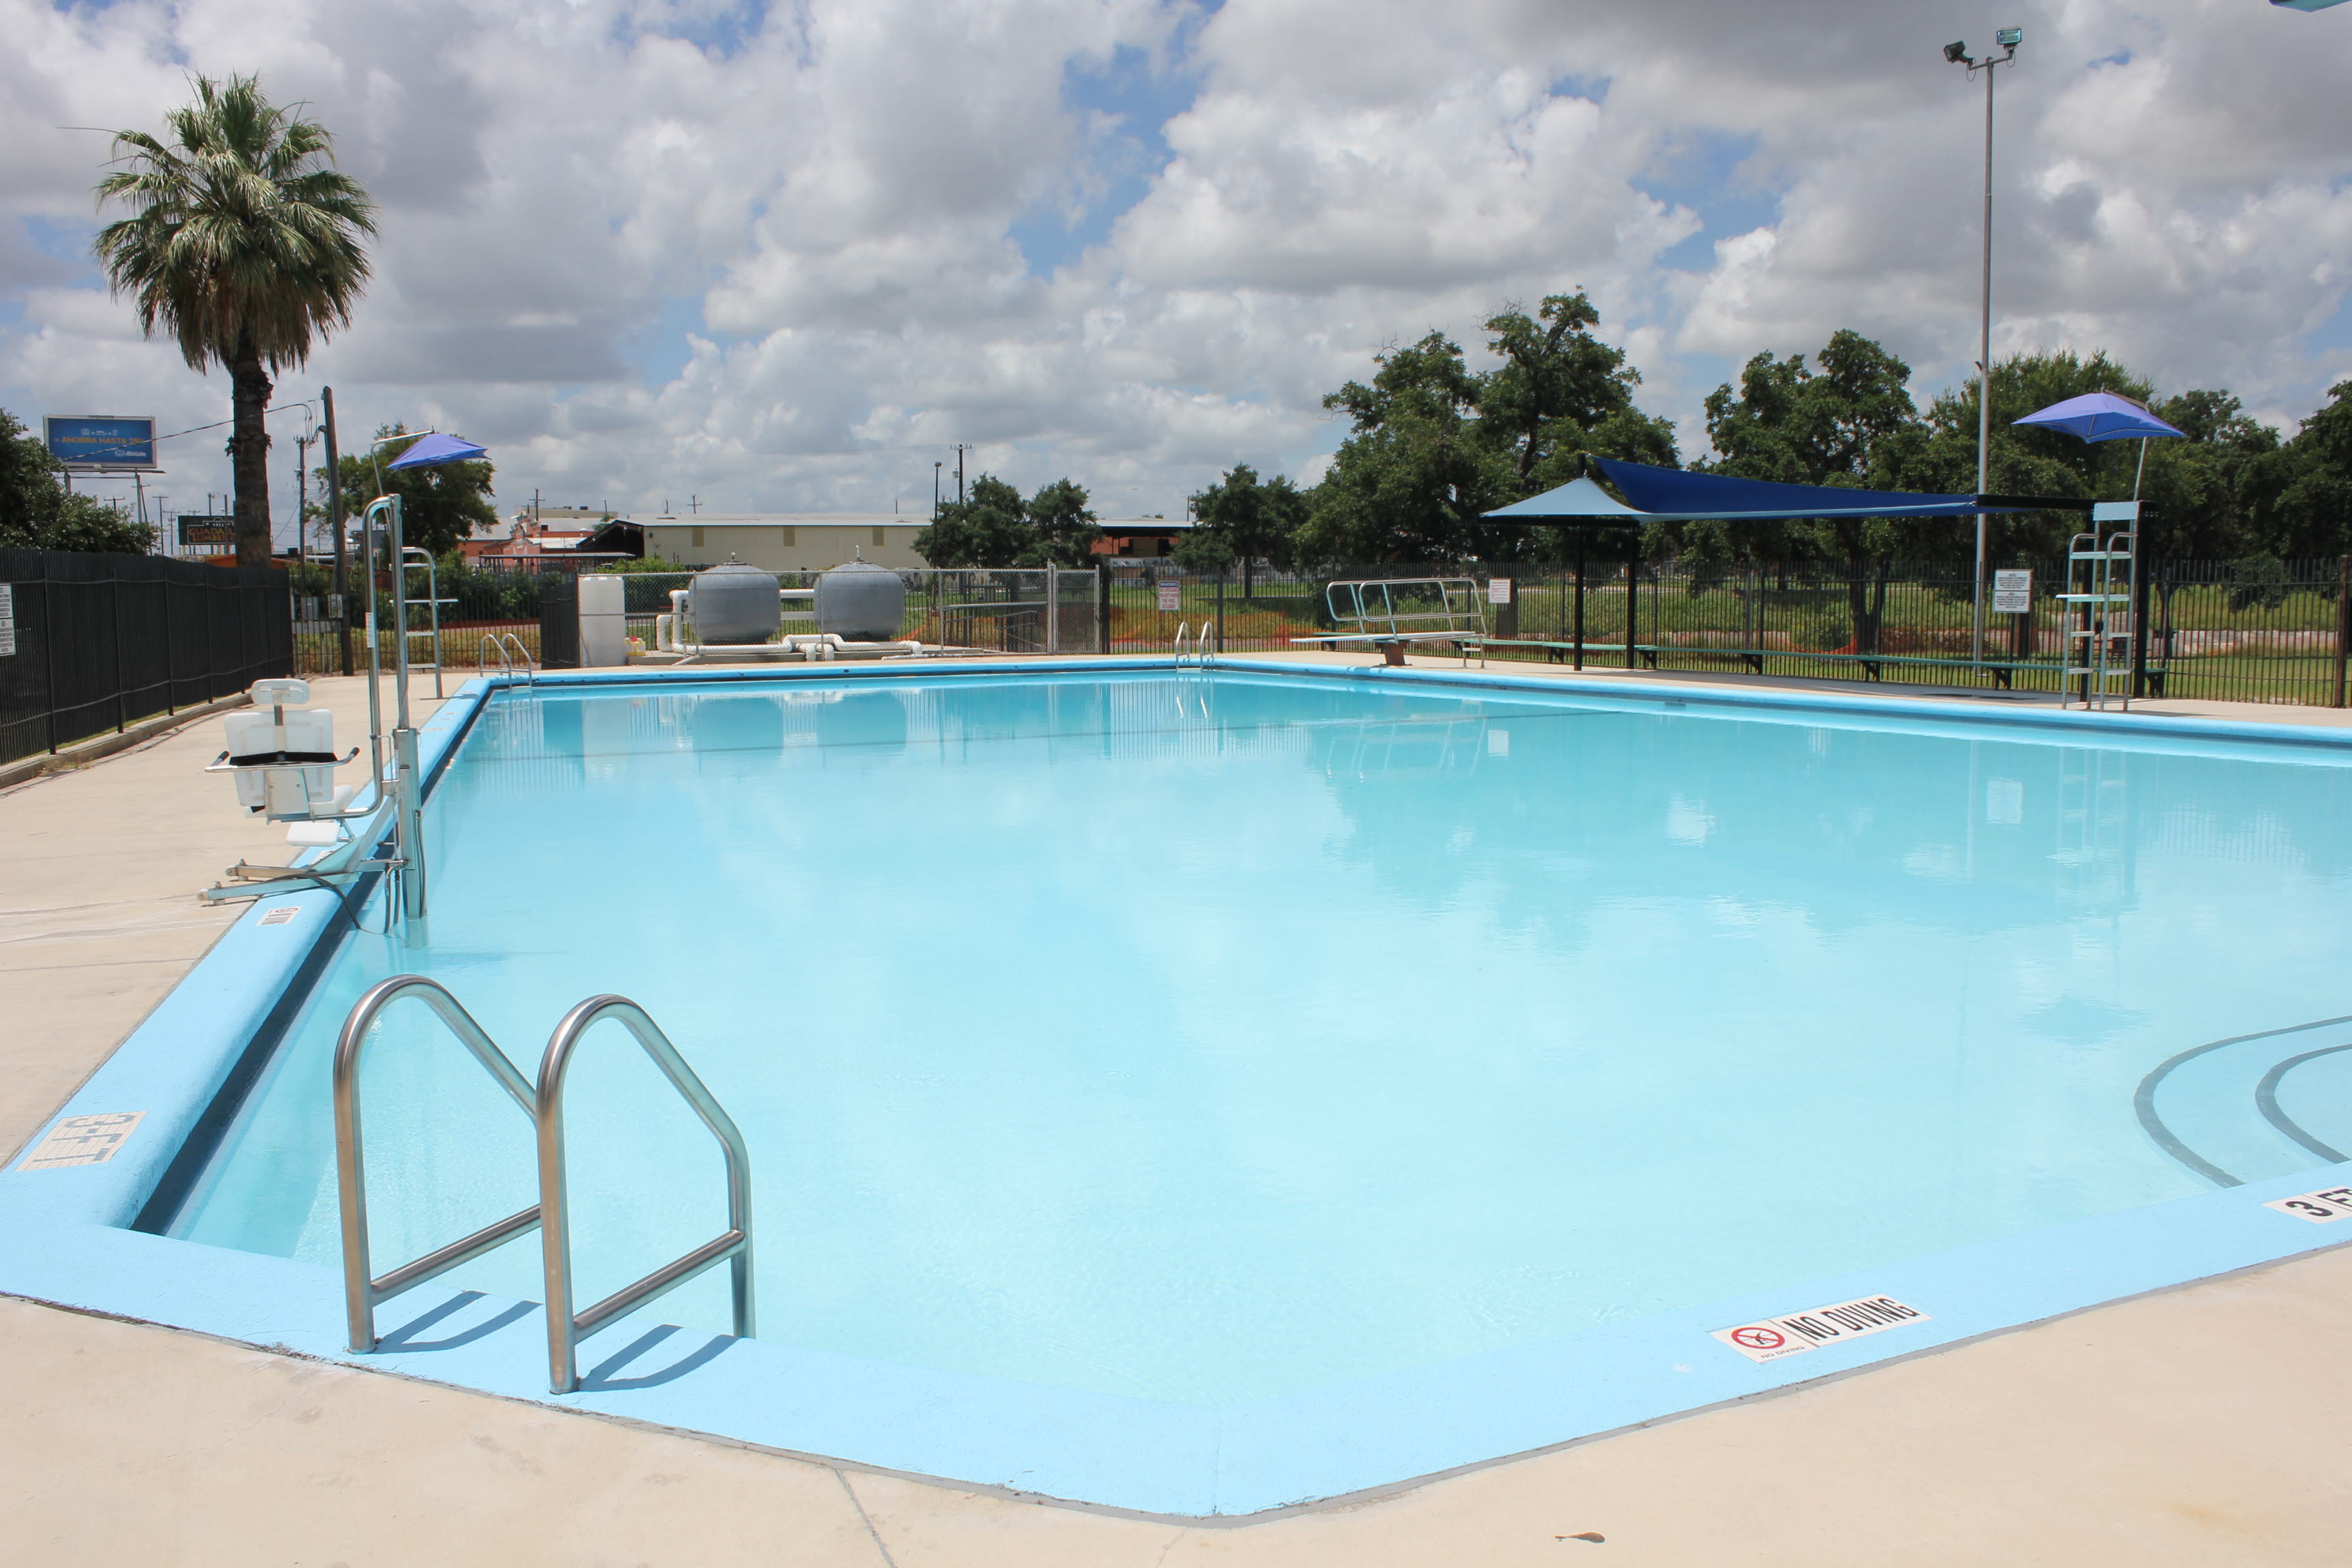 Cassiano park the city of san antonio official city website City of san antonio swimming pools